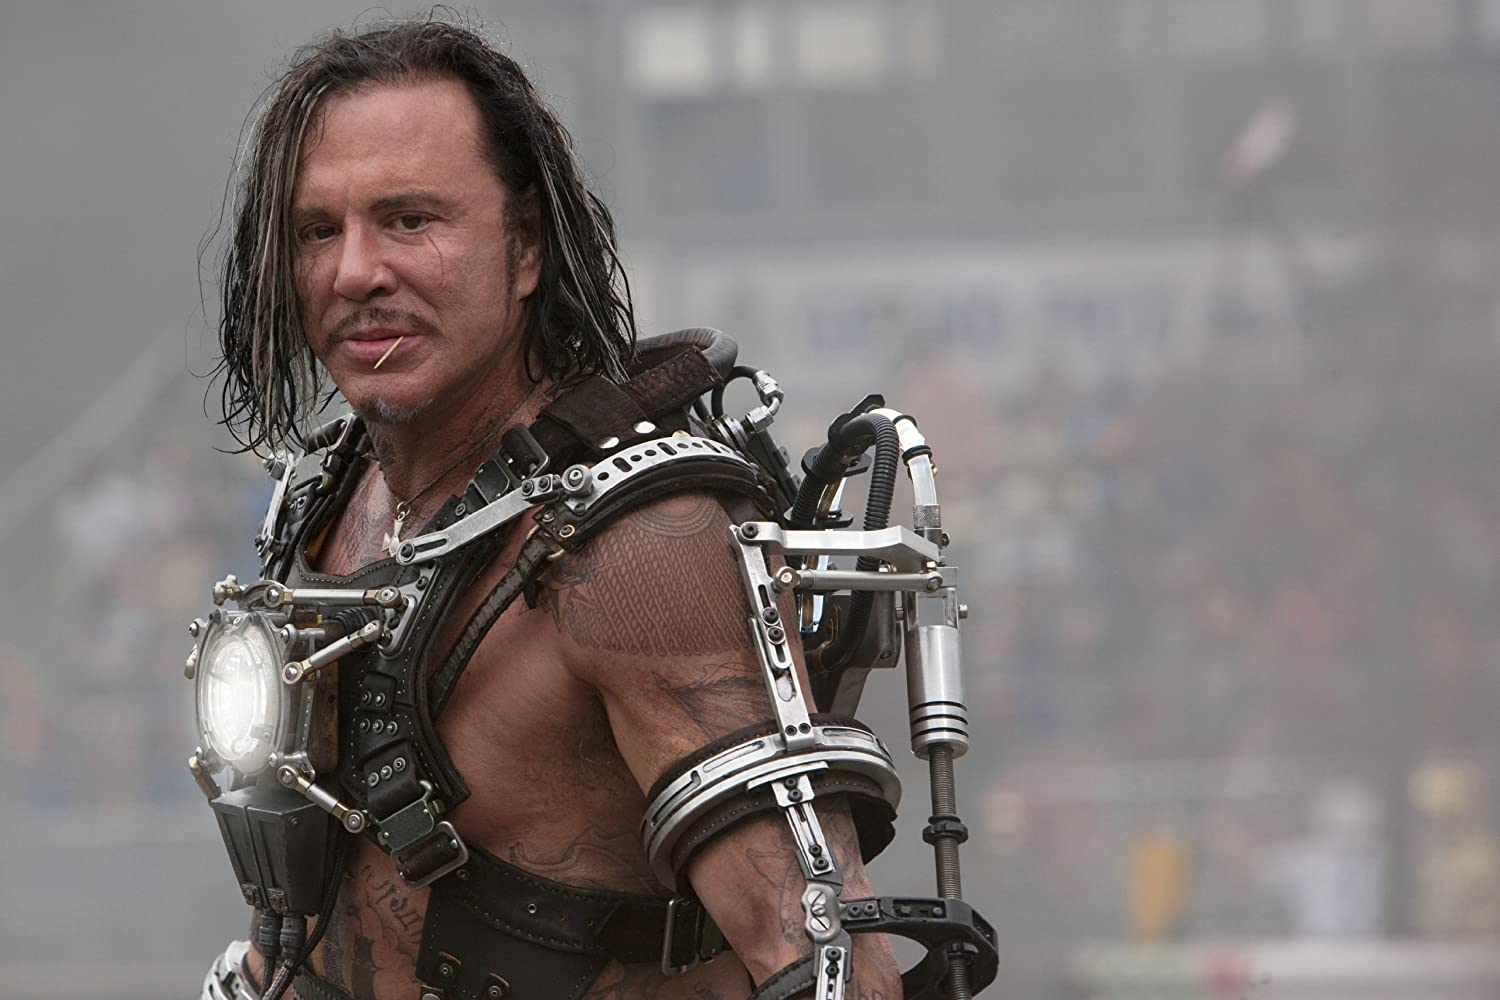 Mickey Rourke in Iron Man 2 (comicuniverse.it)